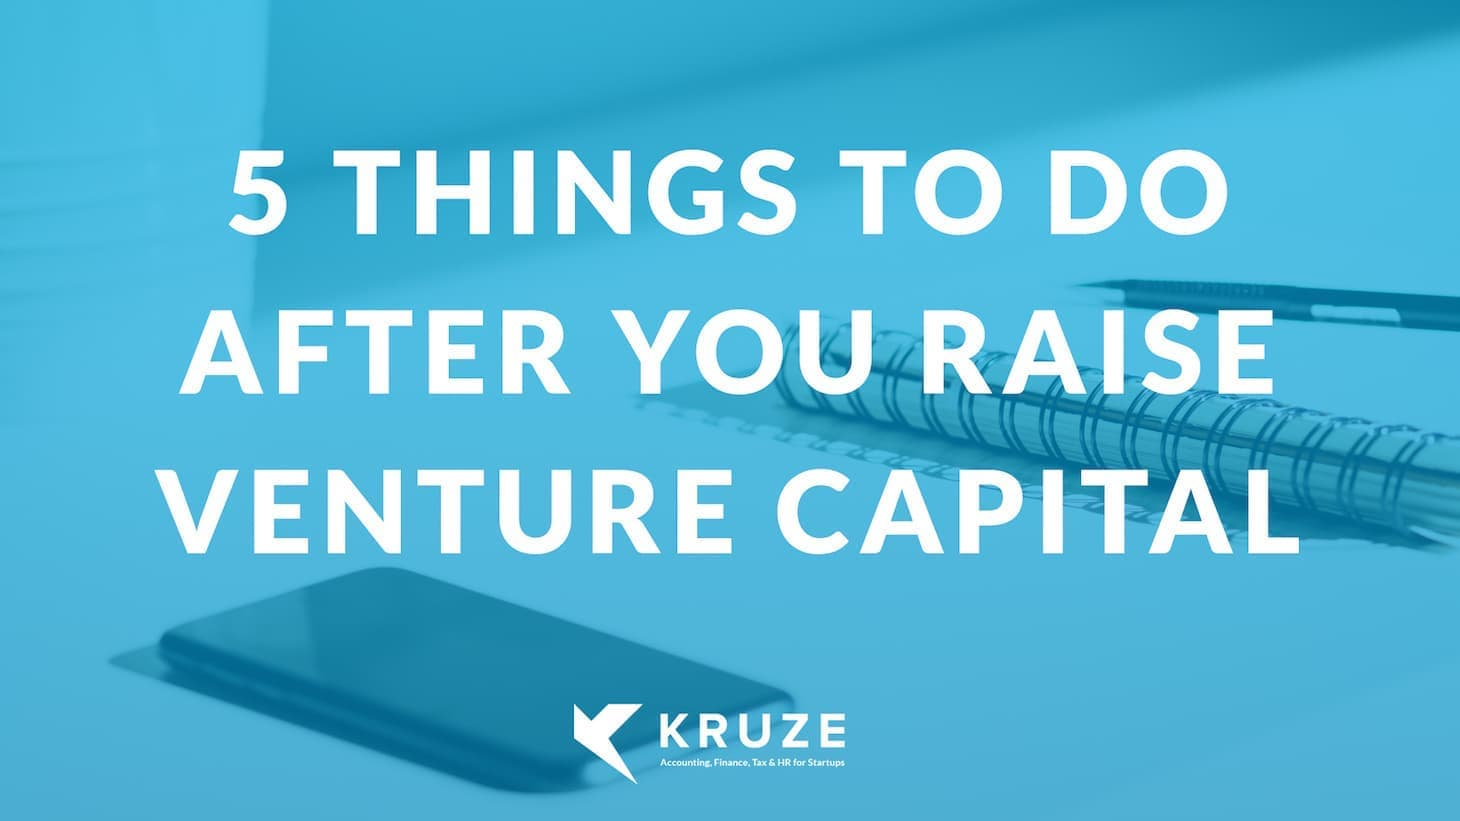 5 Things to do after You Raise Venture Capital